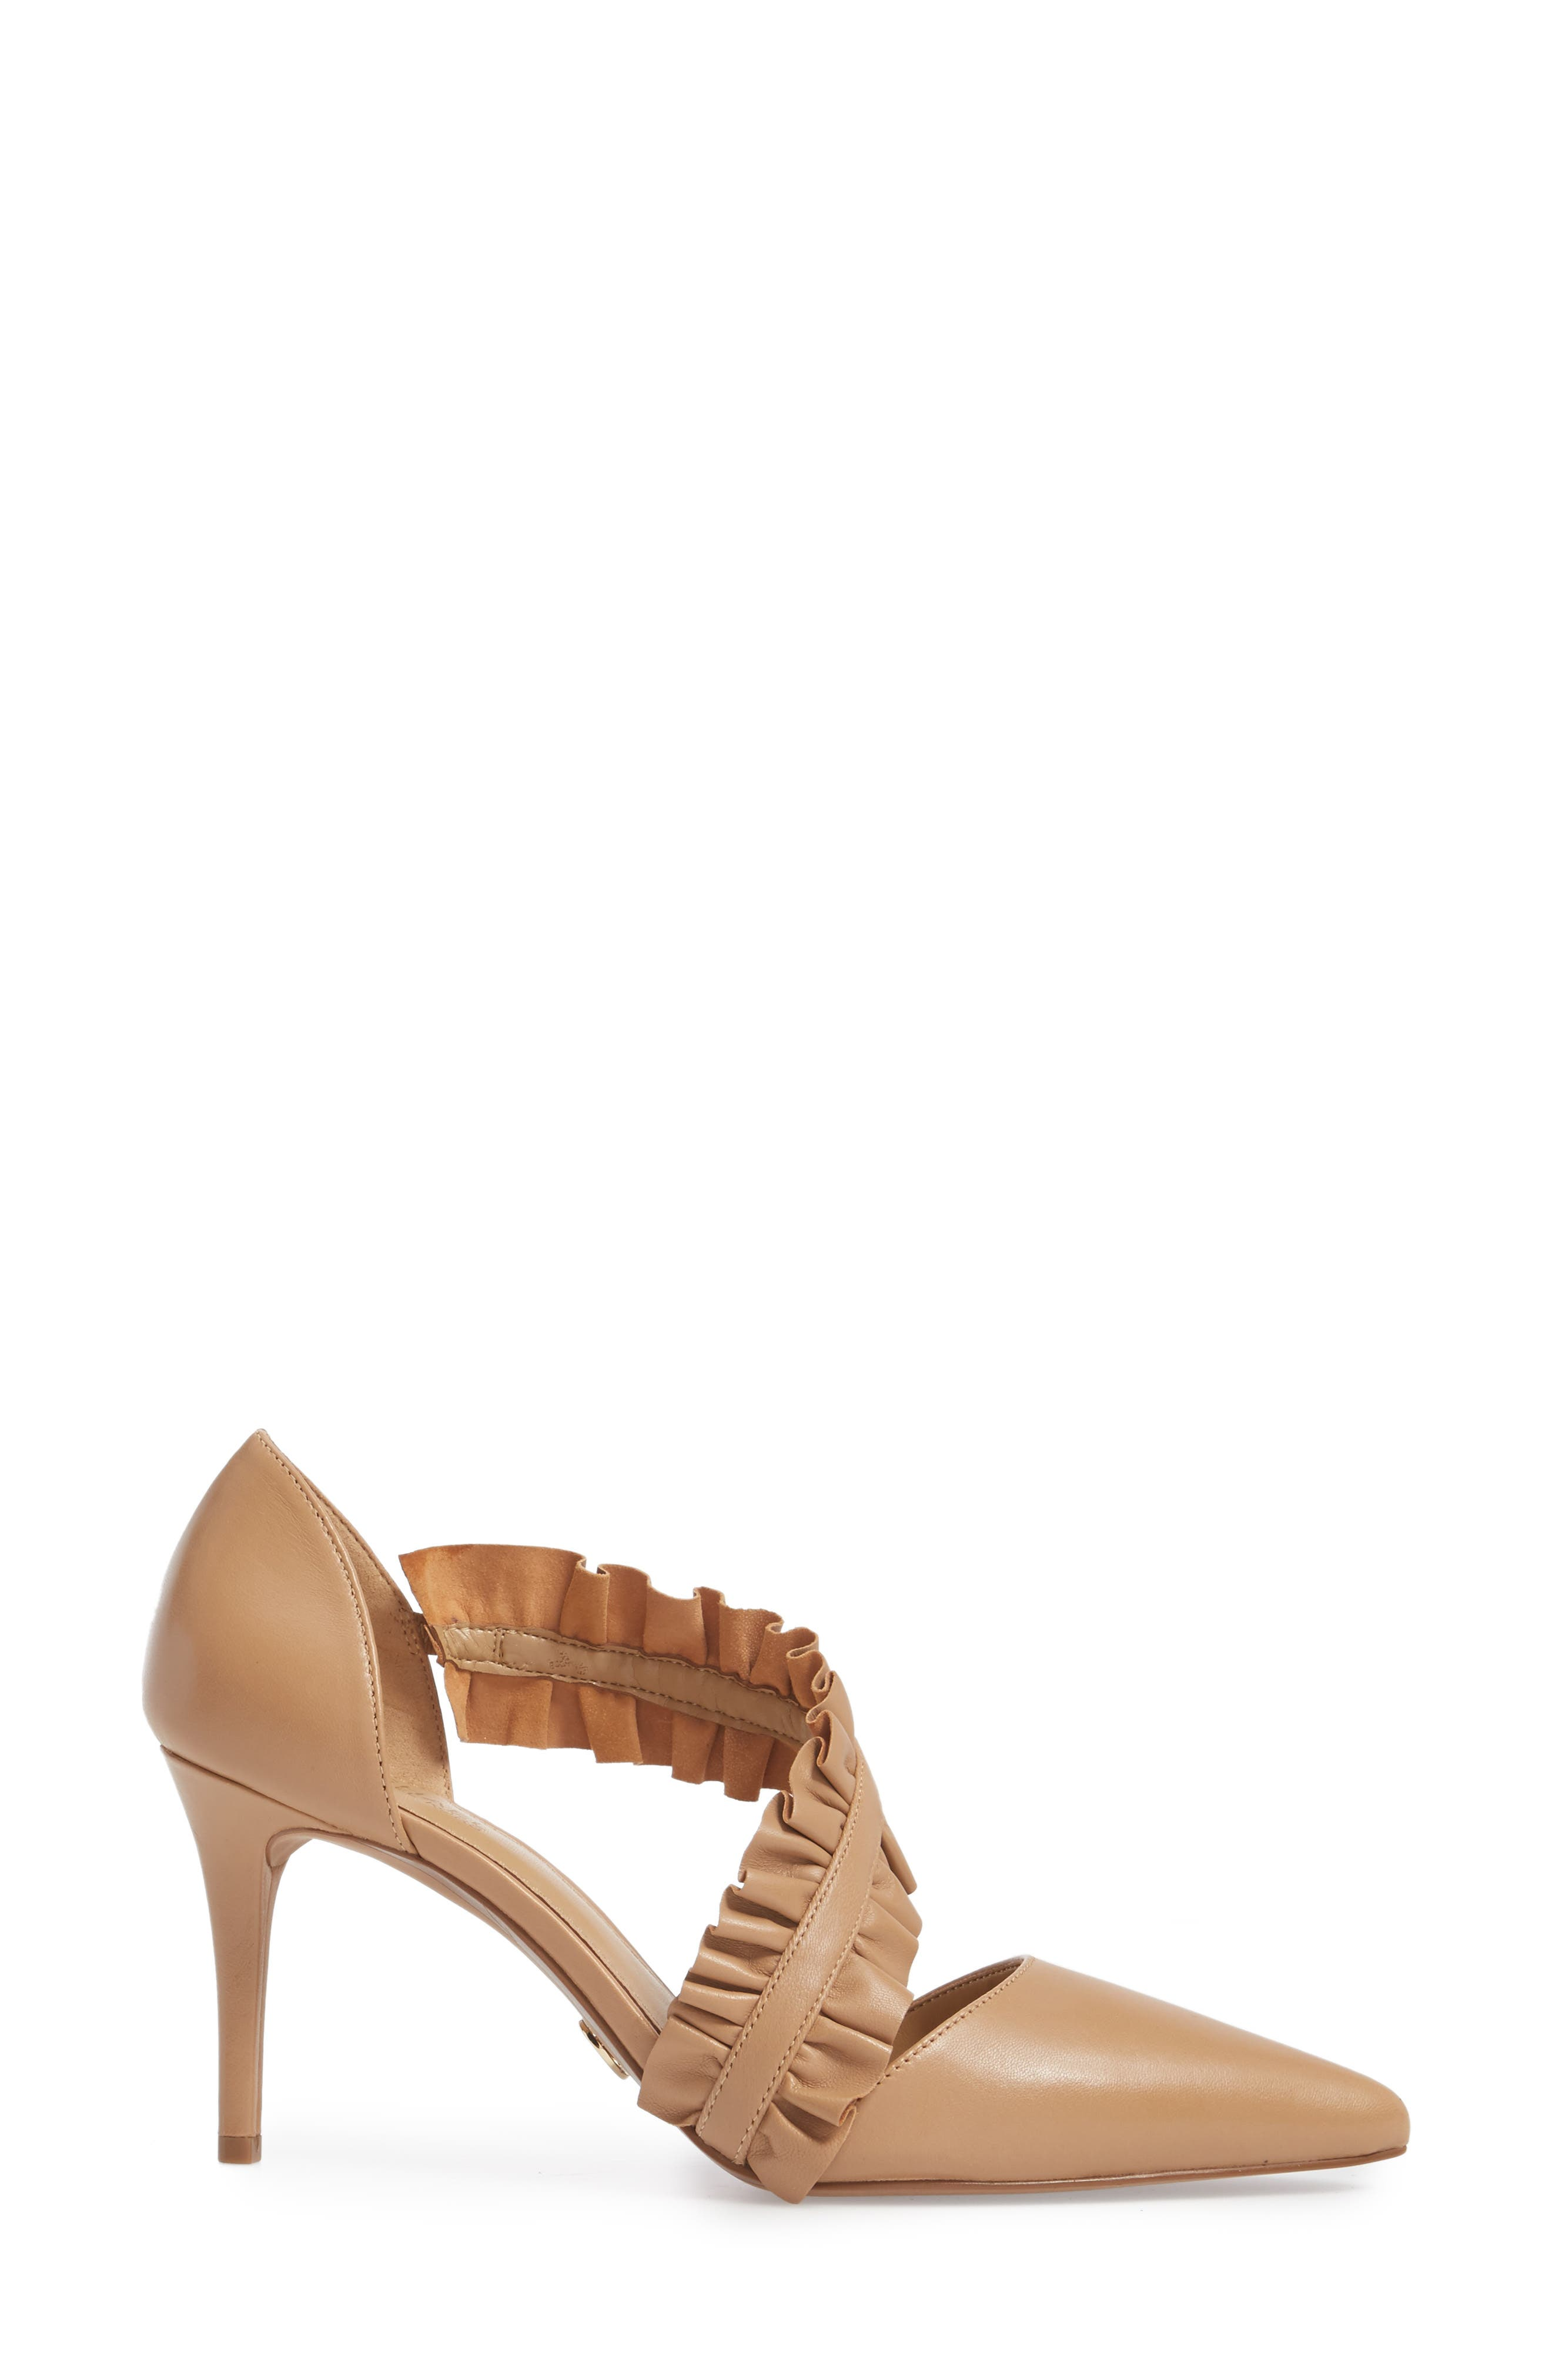 Alternate Image 3  - MICHAEL Michael Kors Bella Ruffle Pump (Women)